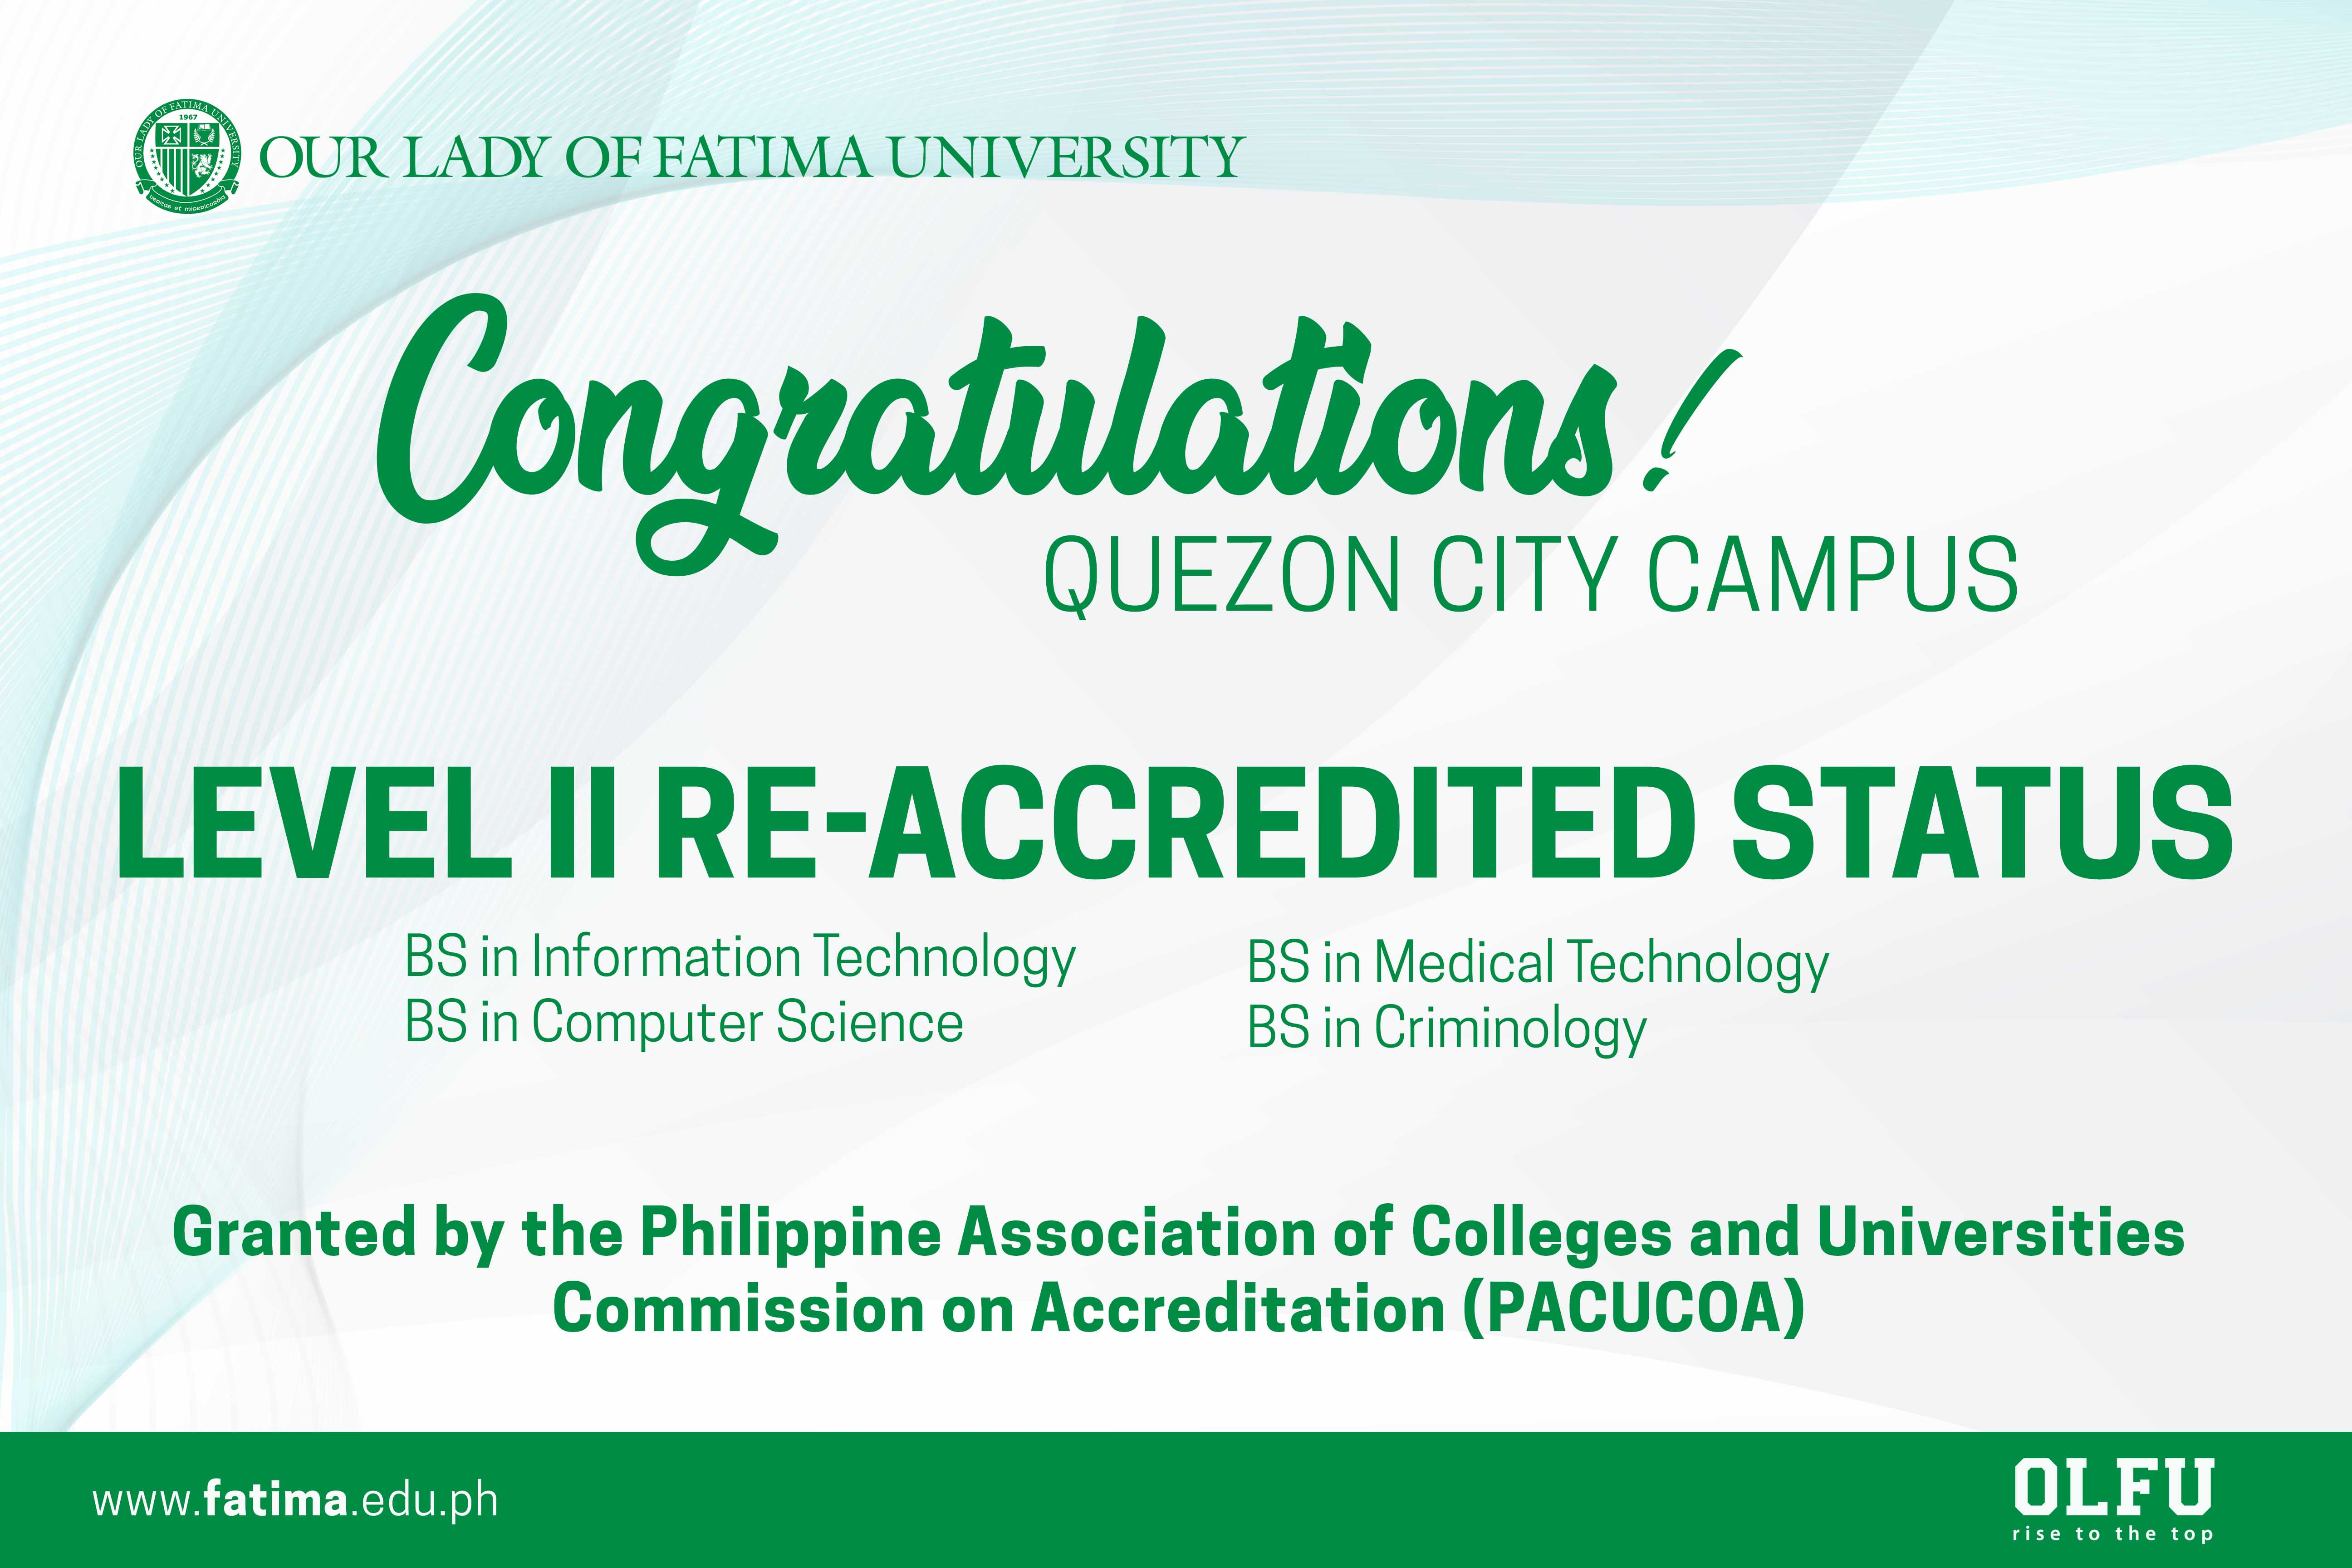 Quezon City Campus Programs receive Level II Re-accredited Status from PACUCOA